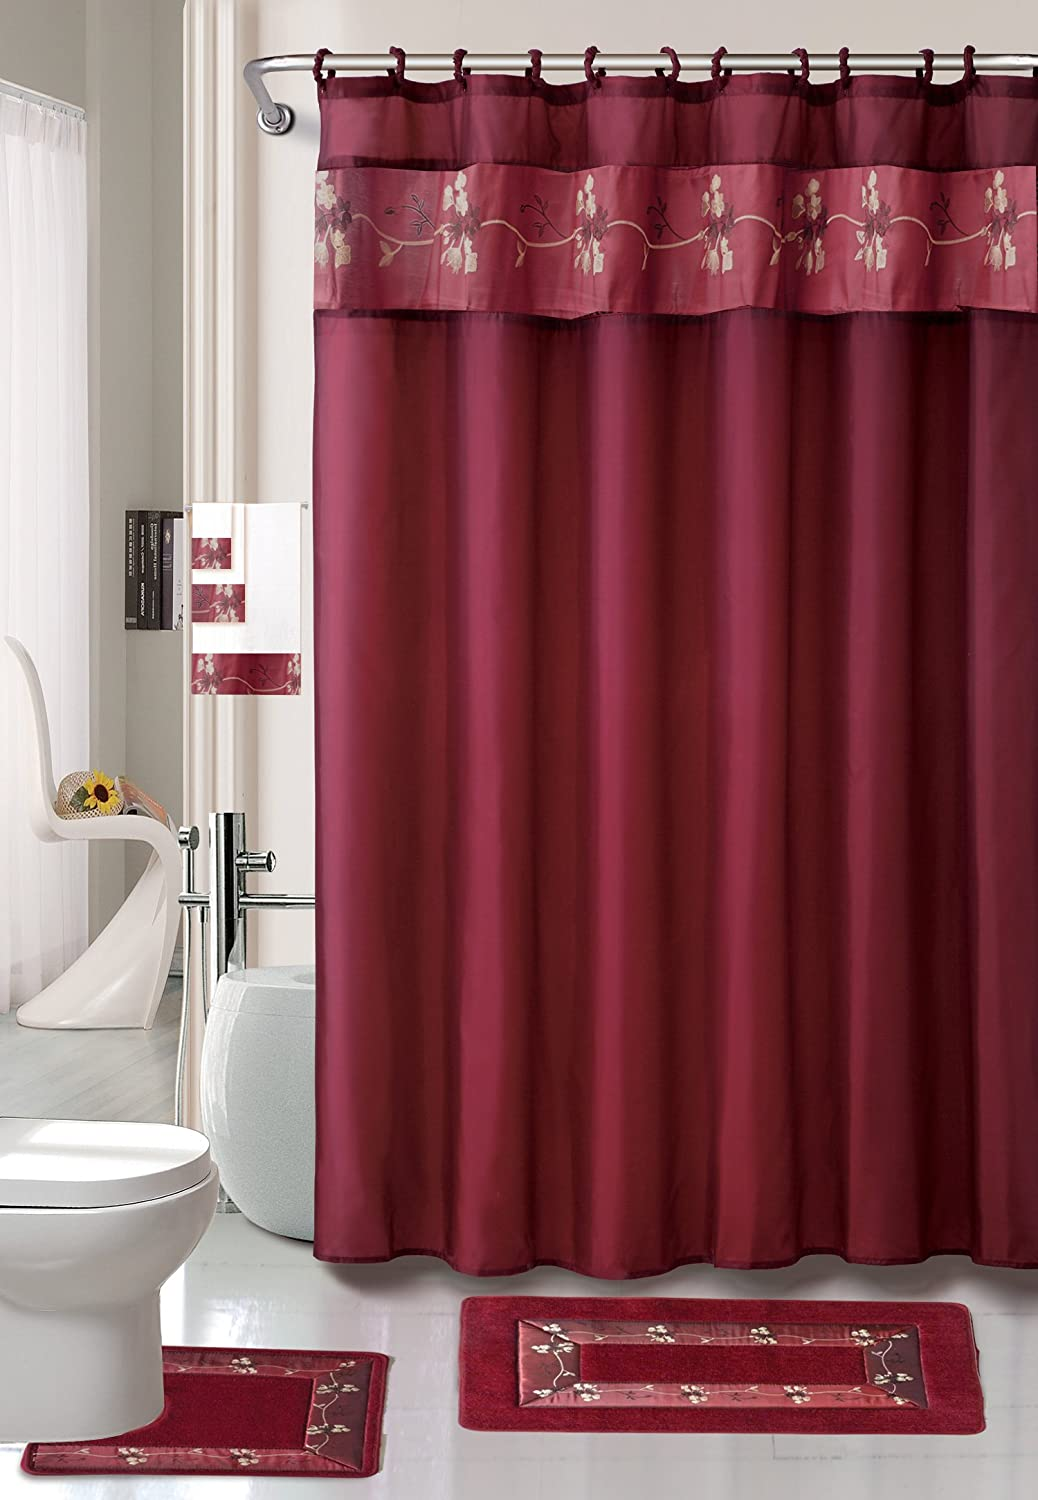 Amazon.com: Burgundy Flower 18-piece Bathroom Set: 2-rugs/mats, 1 ...